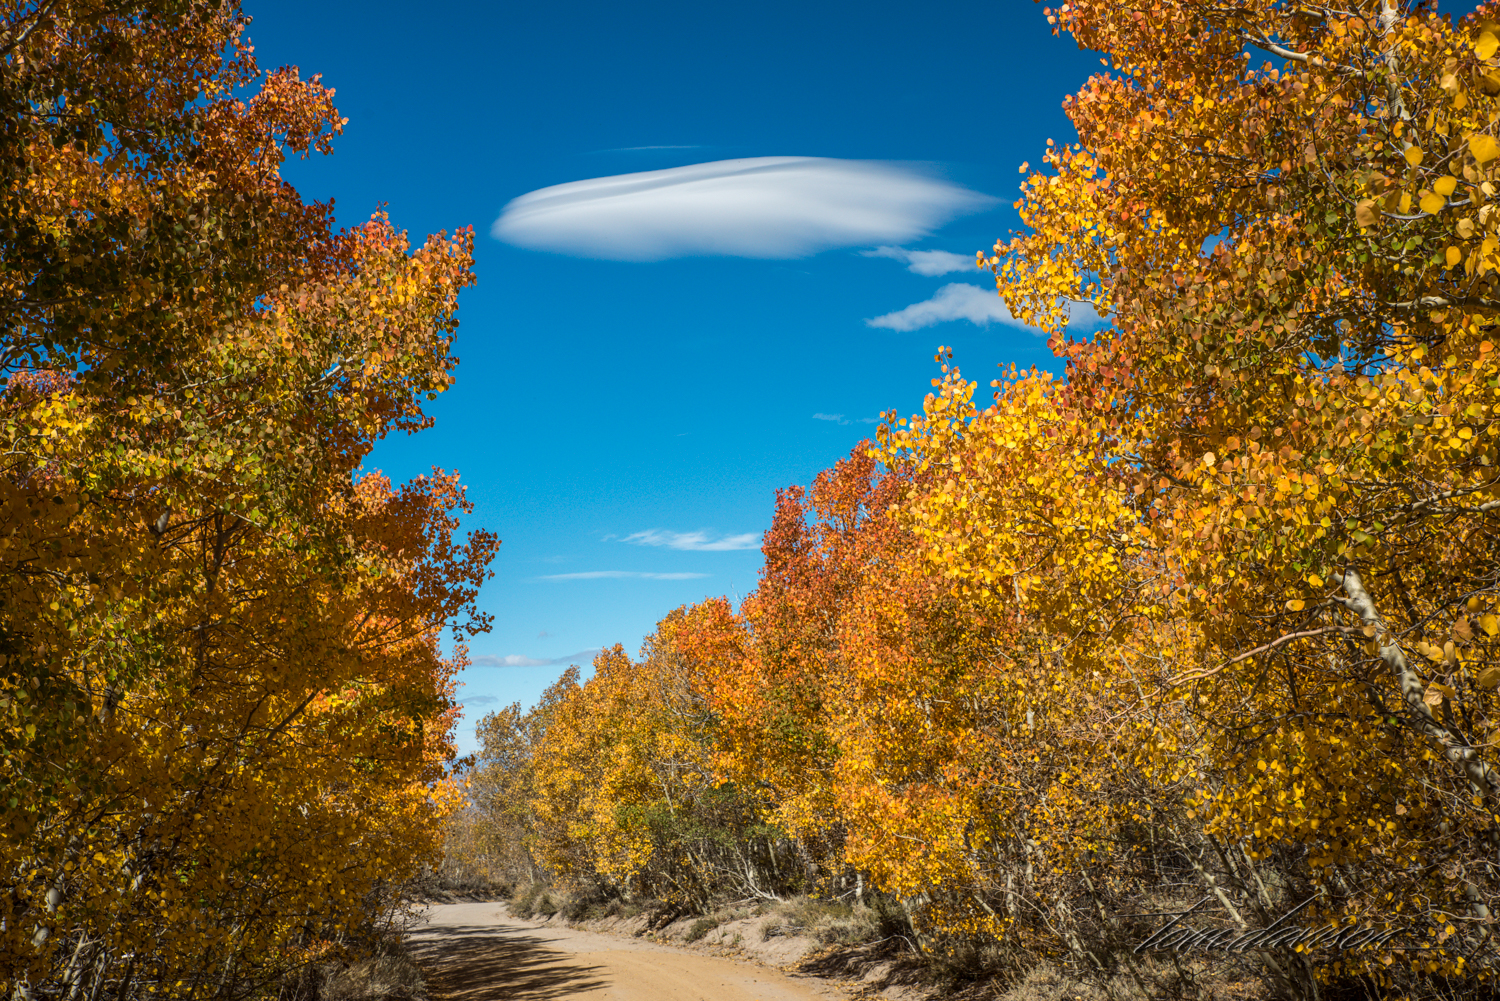 Lenticular clouds are commonly seen in this part of the country.